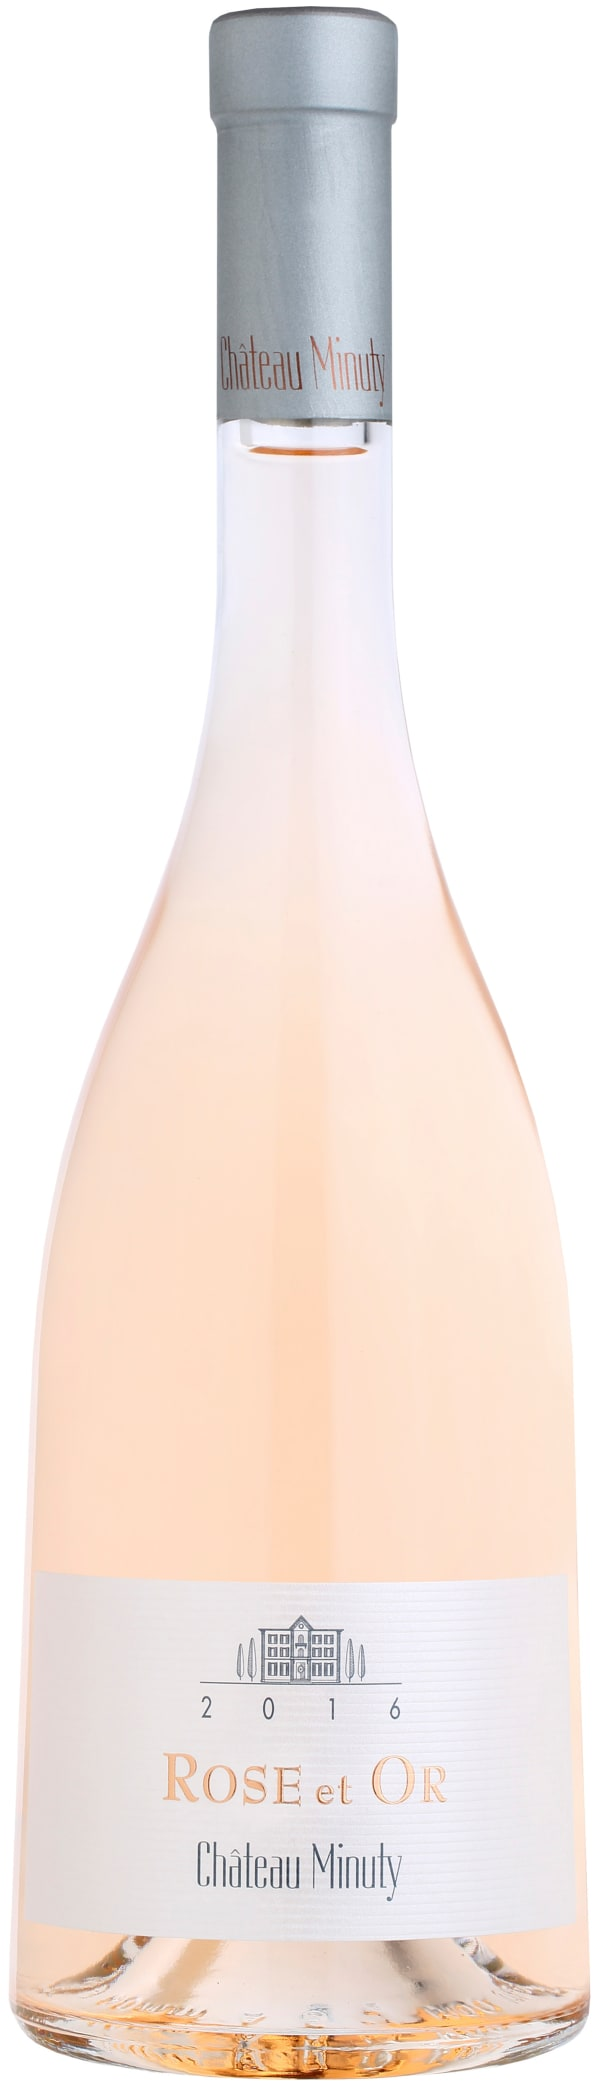 Château Minuty Rose et Or 2018